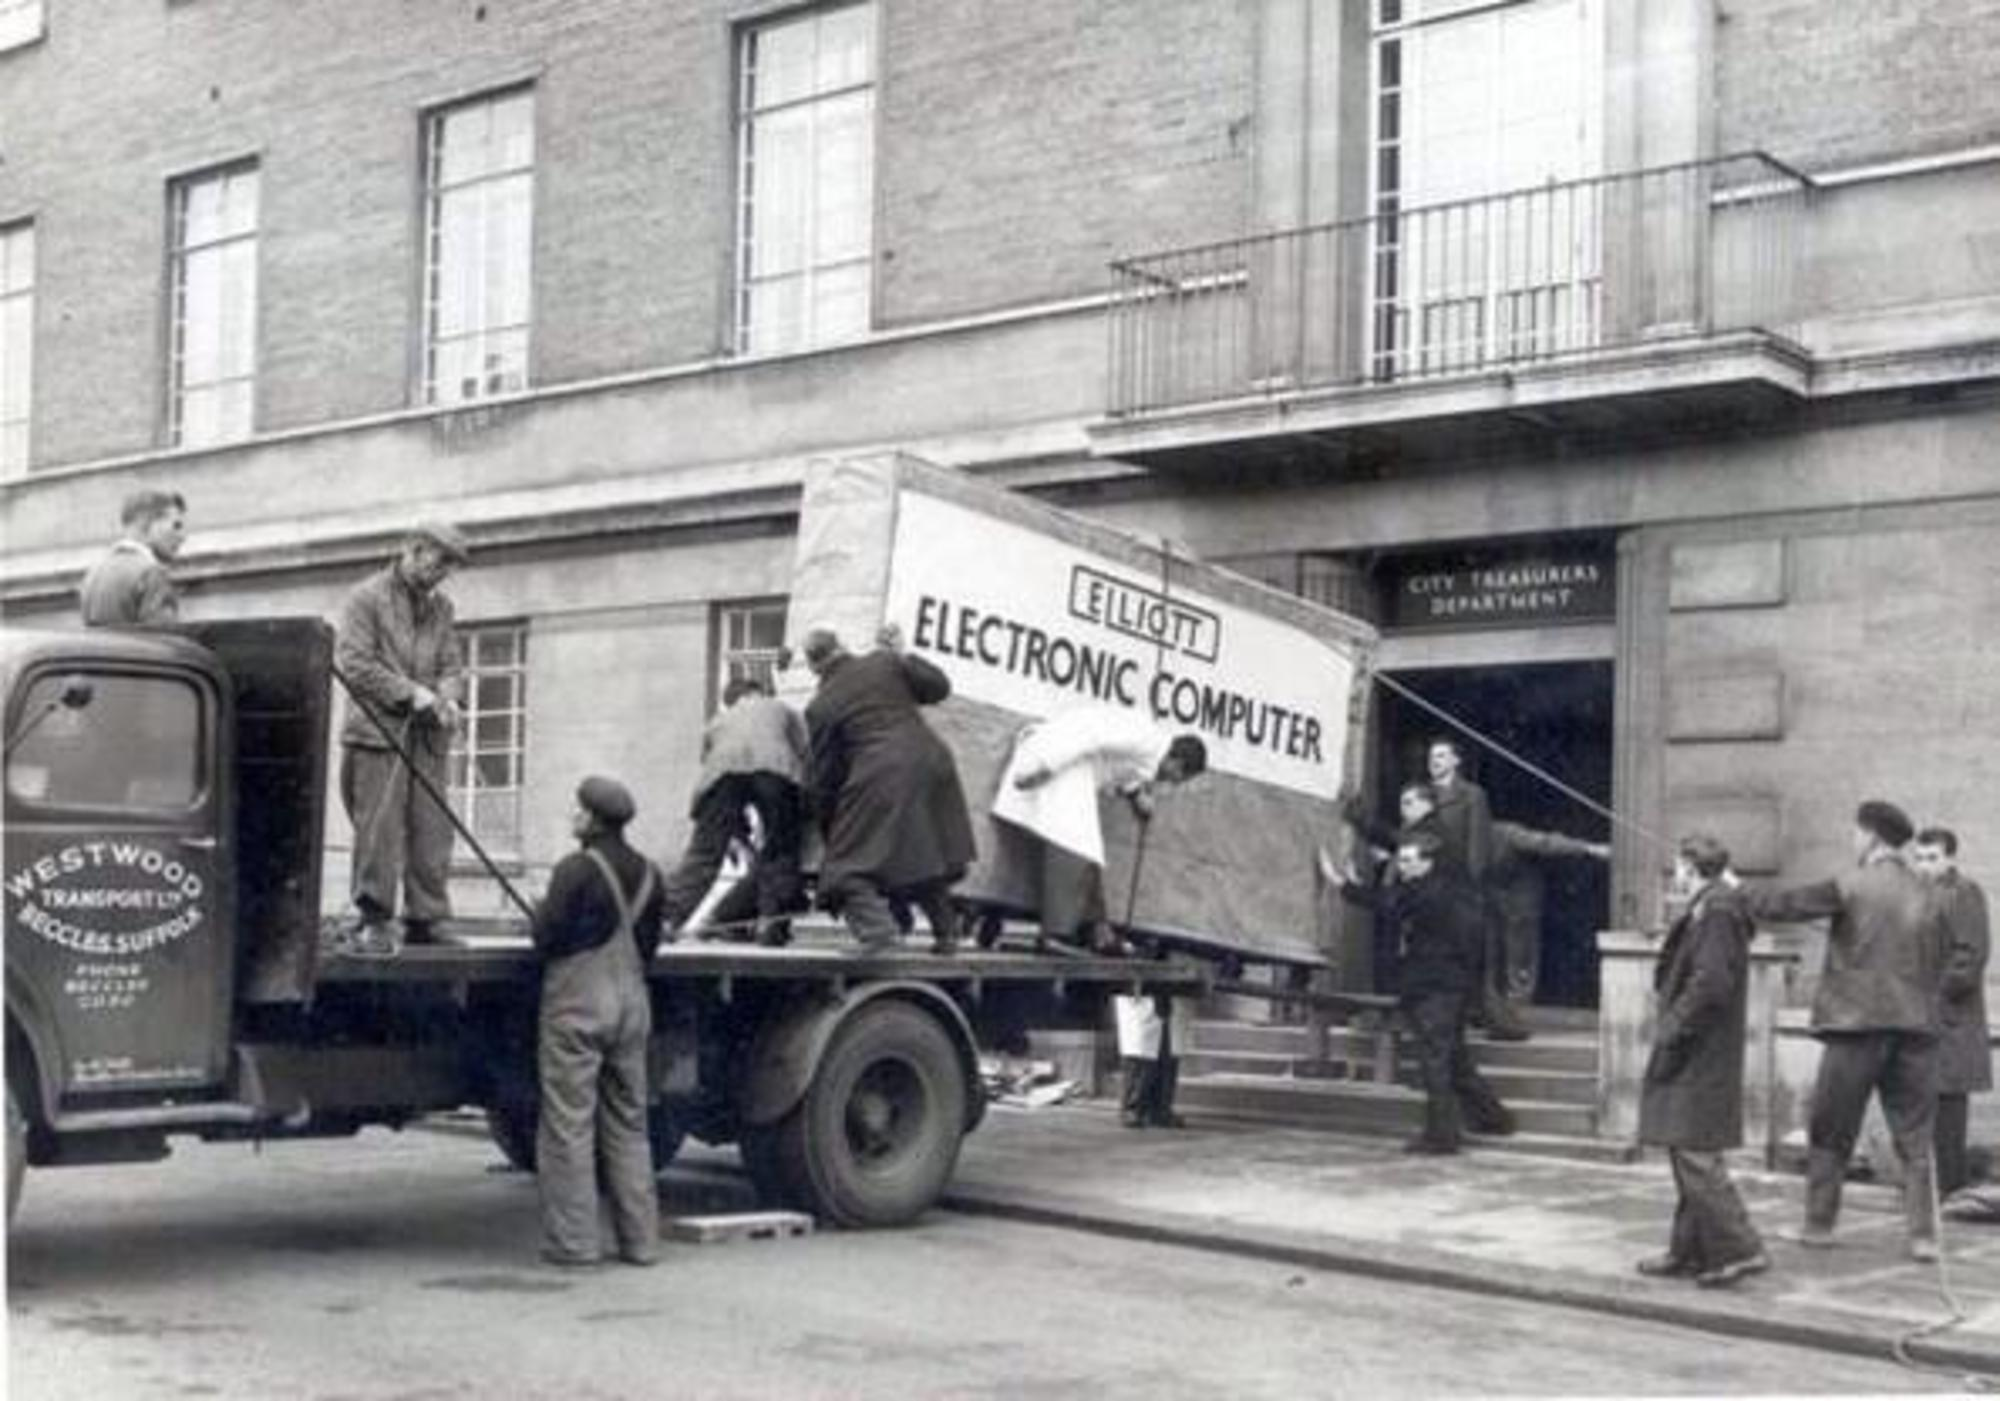 norwich-city-council-first-computer-being-delivered-to-the-city-treasurer-department-in-bethel-street-norwich-1957